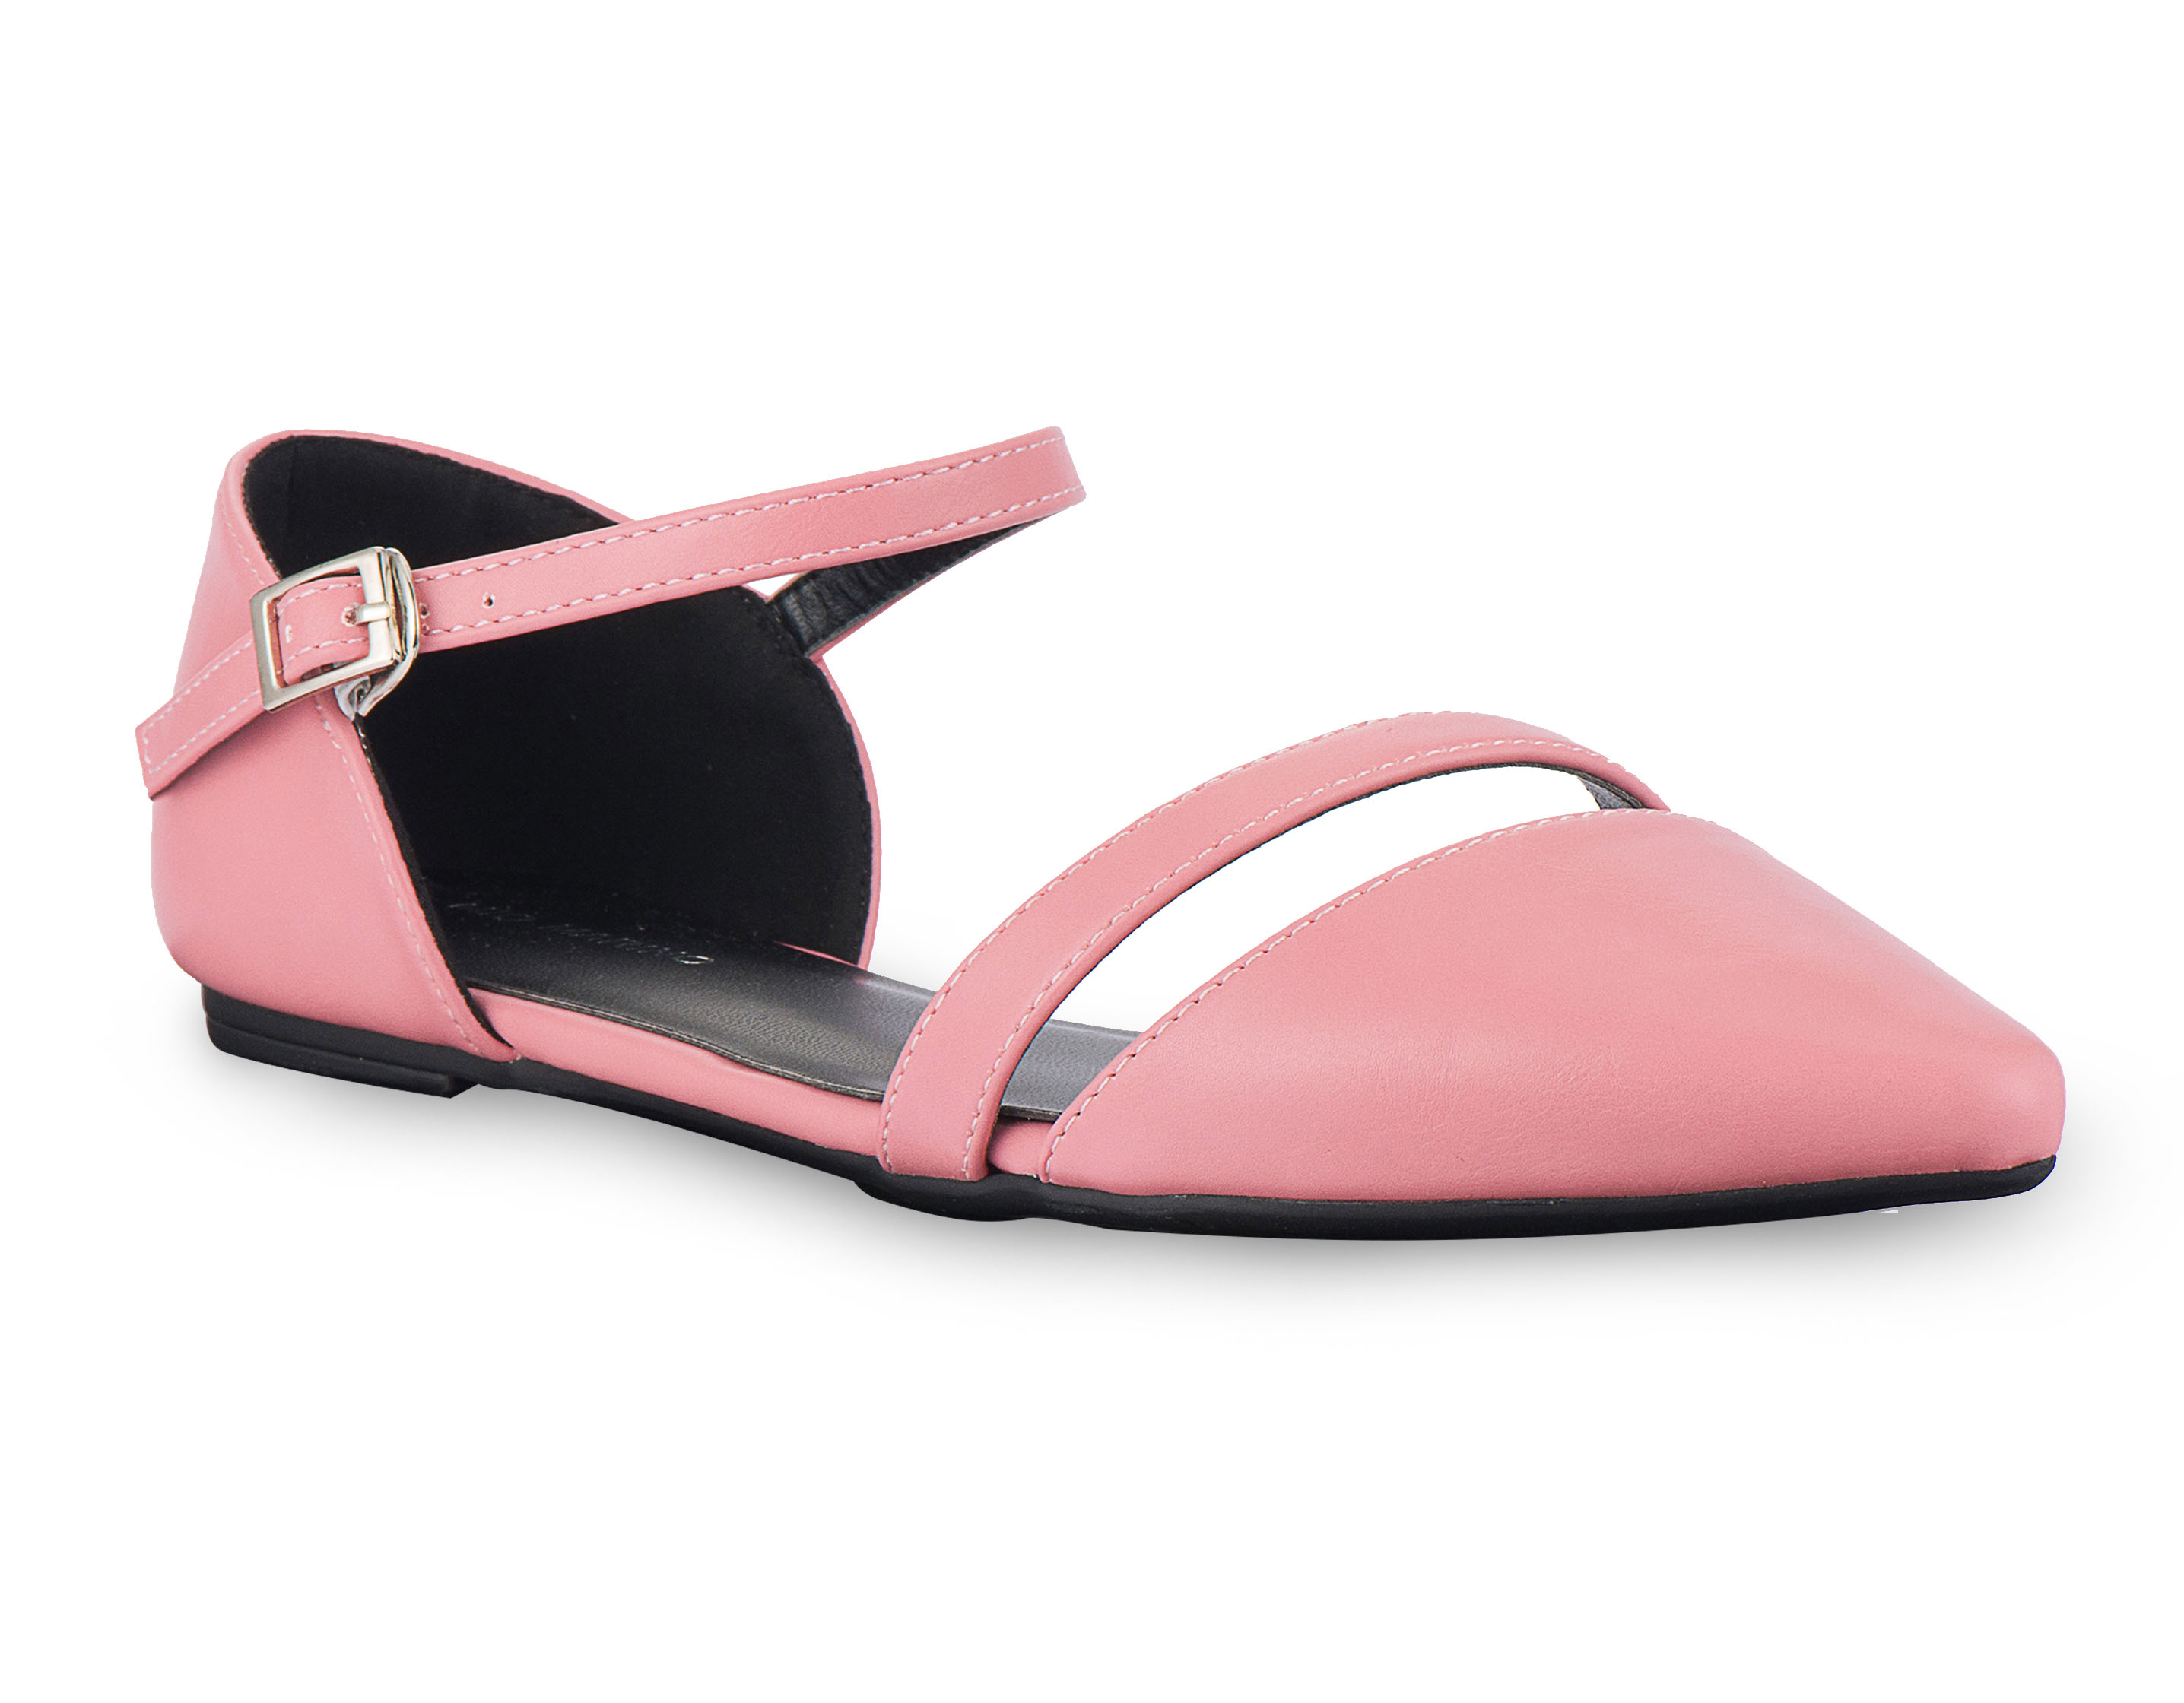 Details about  /New Women Low Wedge Sandals Ankle Strap Print Pink Blu 6 6.5 7 7.5 8 8.5 9 10 11